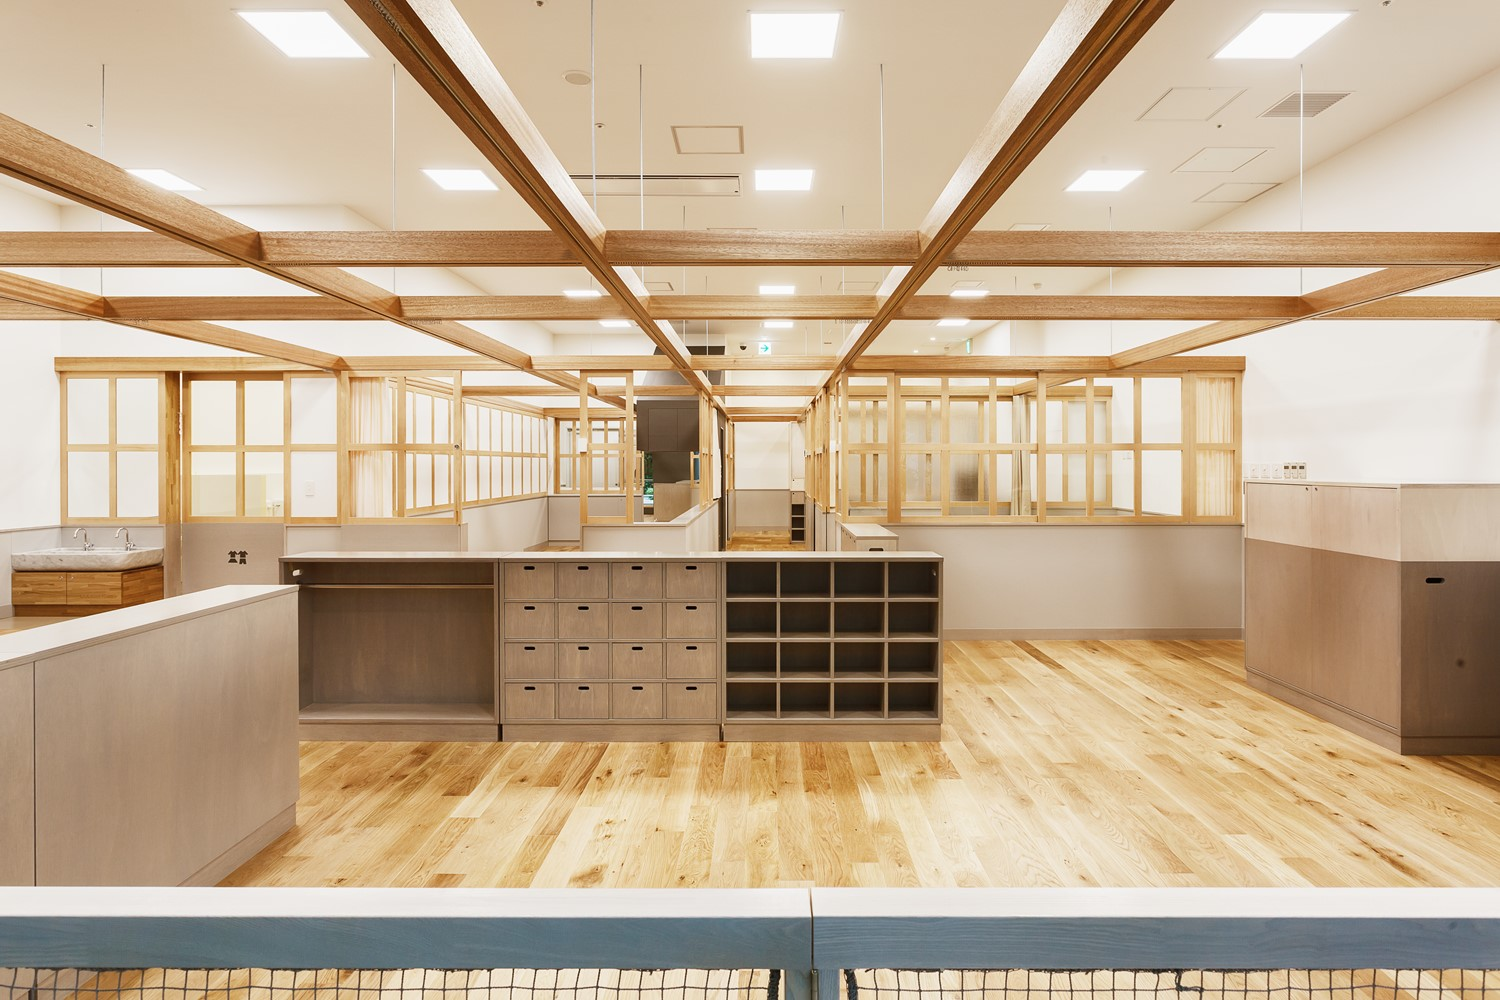 Kindergarten on the ground floor of an office building. Flexibility of interior space